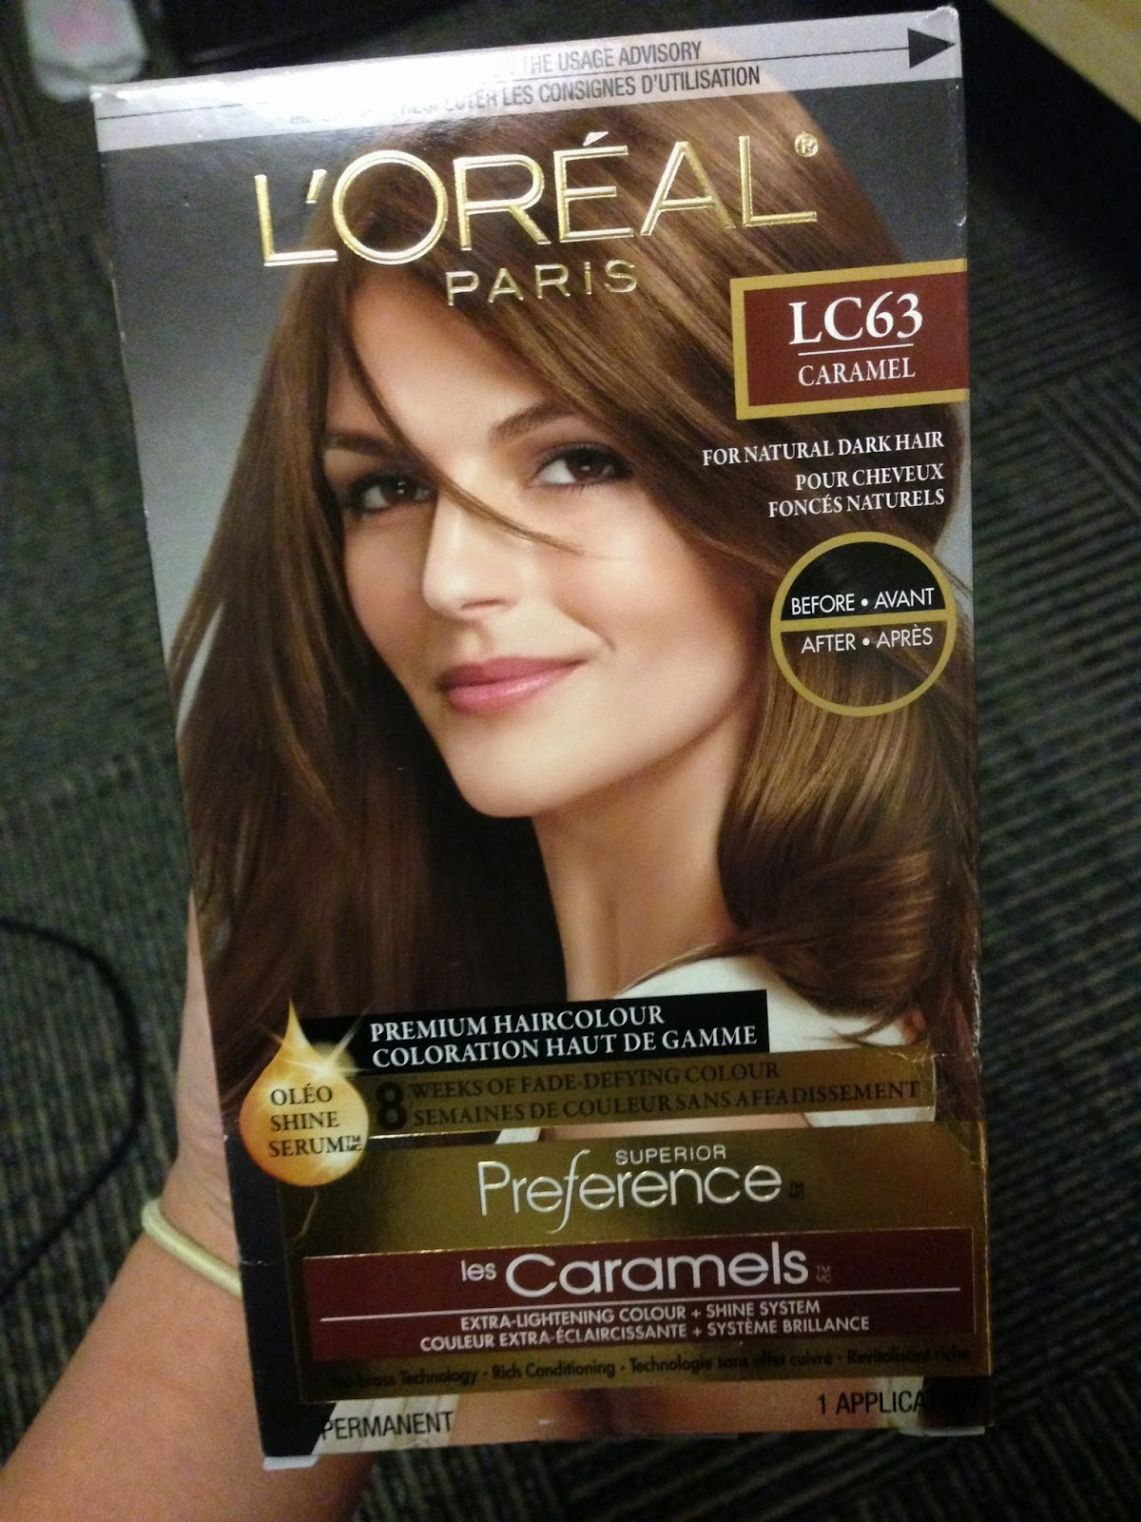 Loreal Caramel Hair Color Review Best Color Hair For Hazel Eyes Check More At Http Www Fitnursetayl Hair Color Caramel Hair Color Reviews Brown Hair Colors